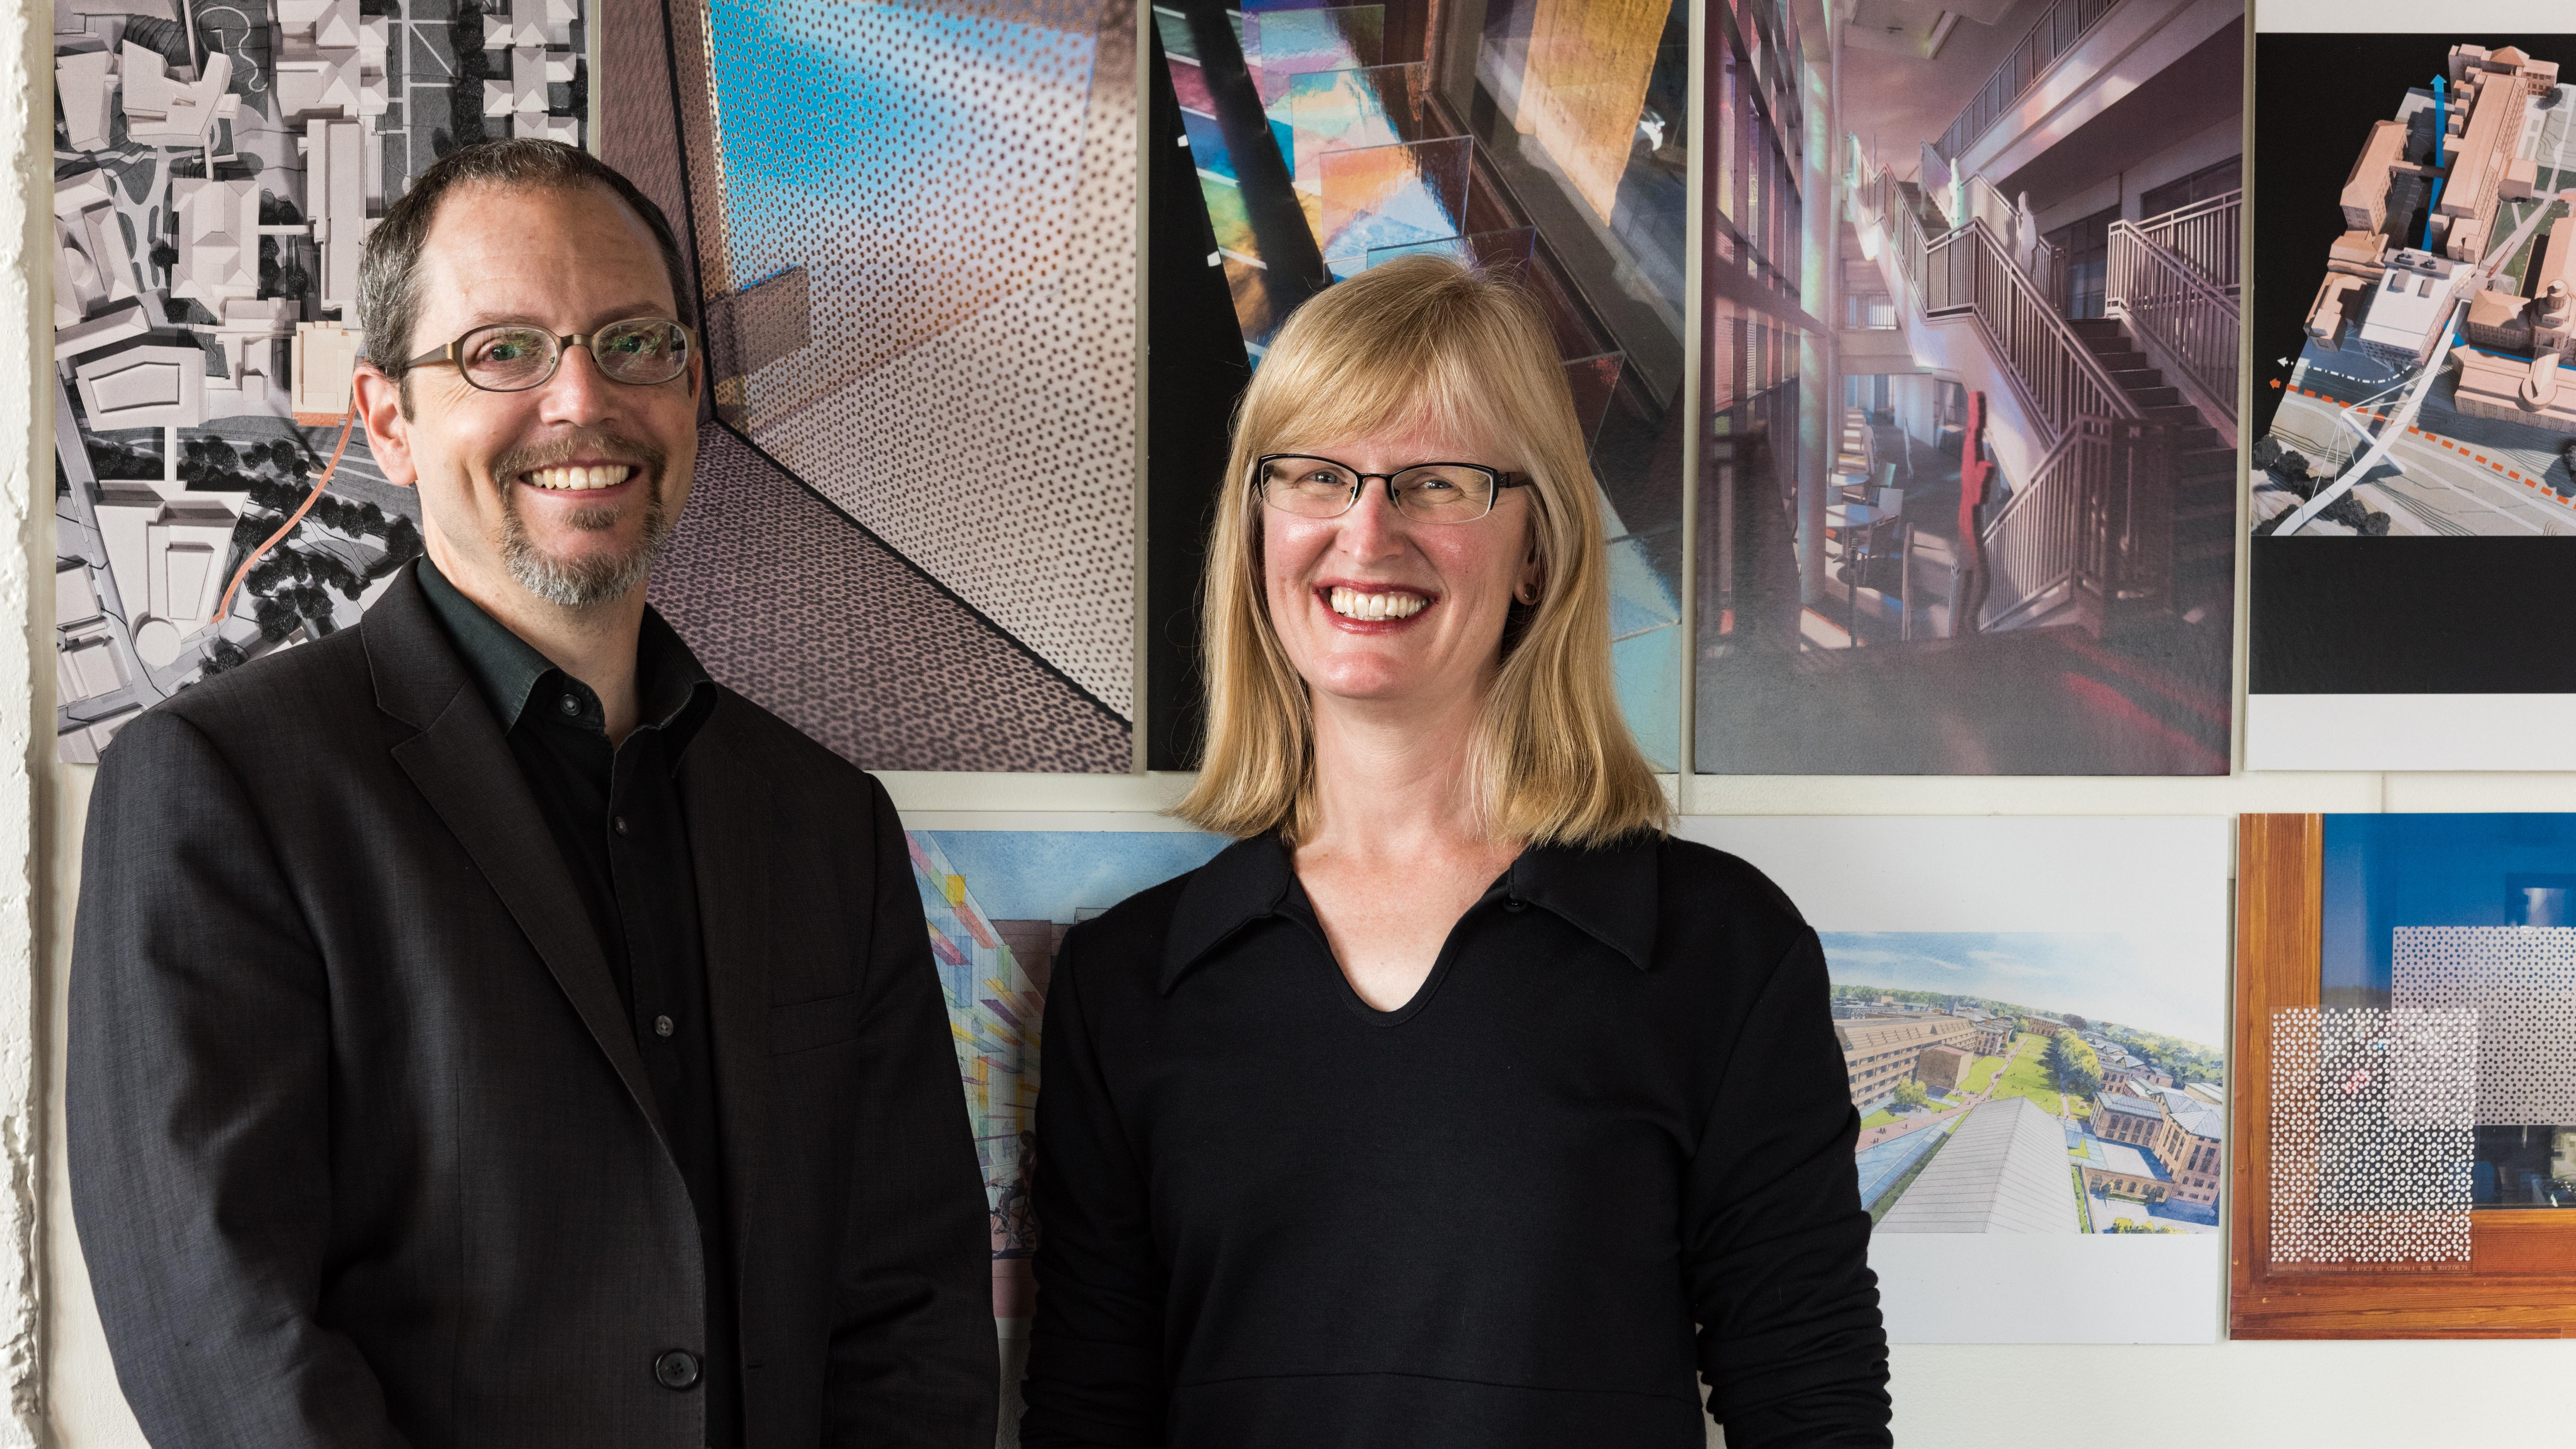 Michelle LaFoe and Isaac Campbell, OFFICE 52 Architecture